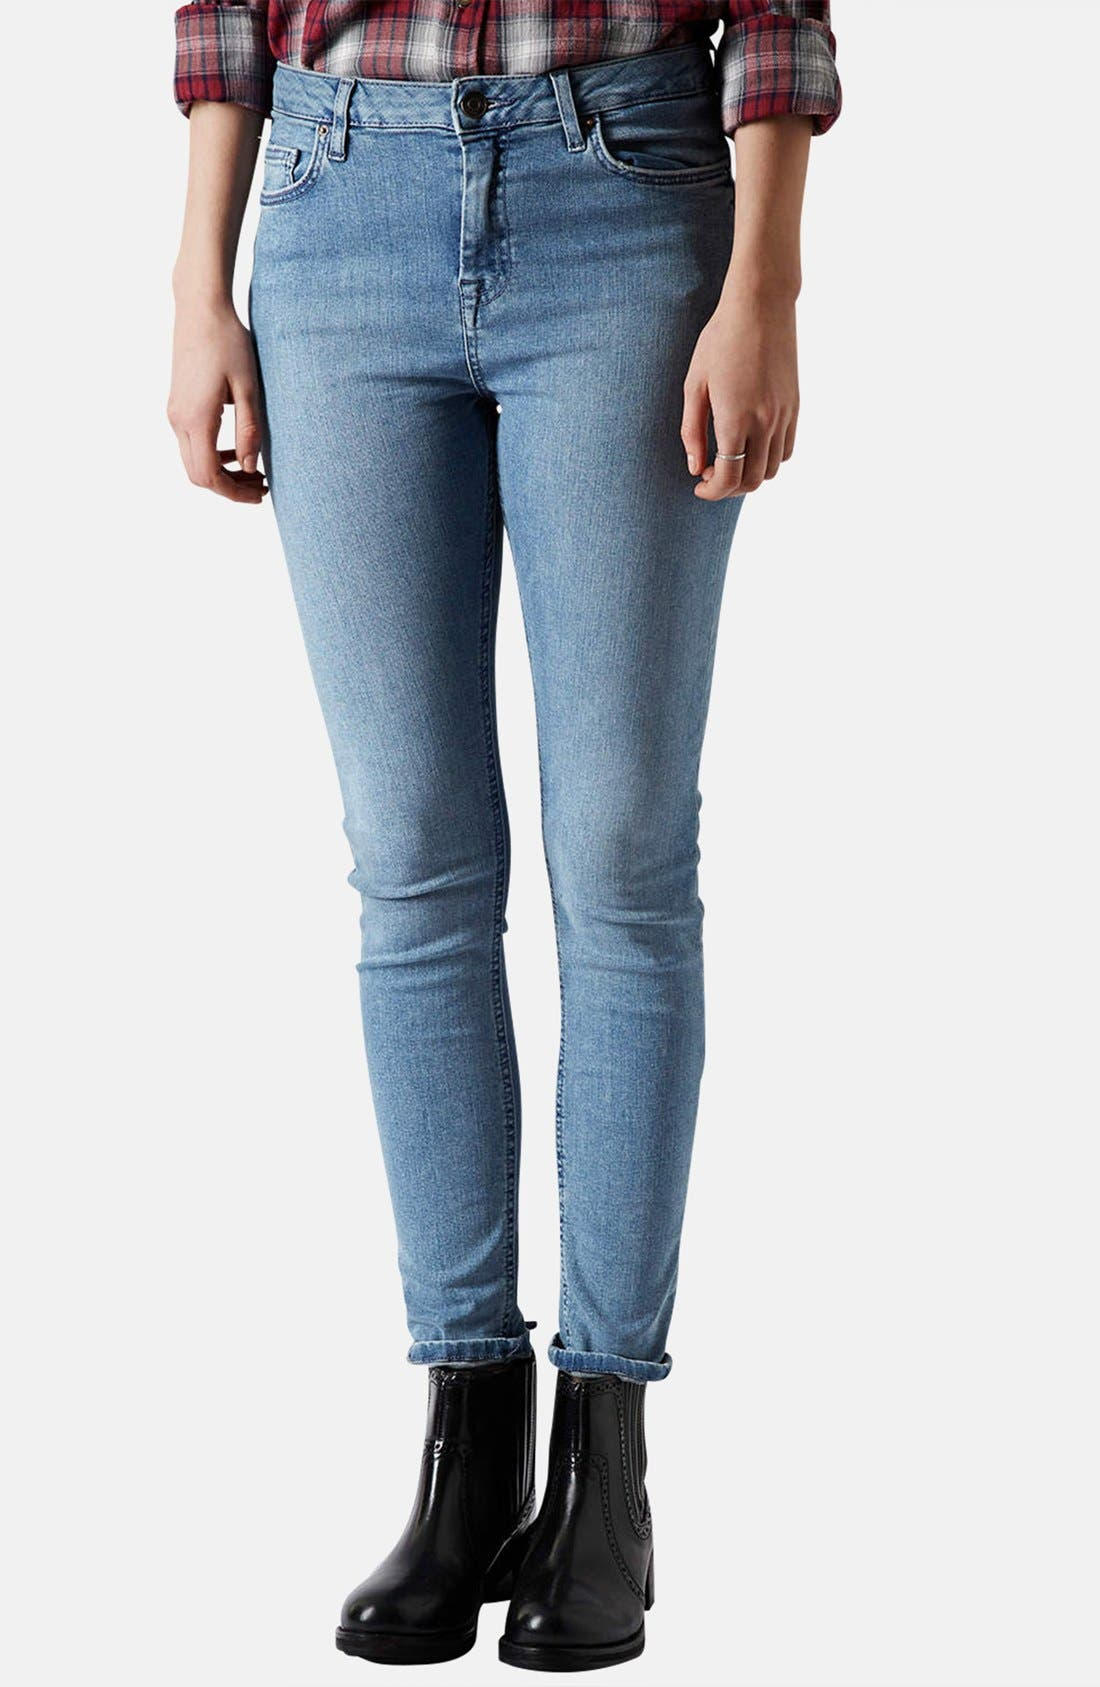 Alternate Image 1 Selected - Topshop Moto 'Jamie' High Rise Skinny Jeans (Mid Stone)